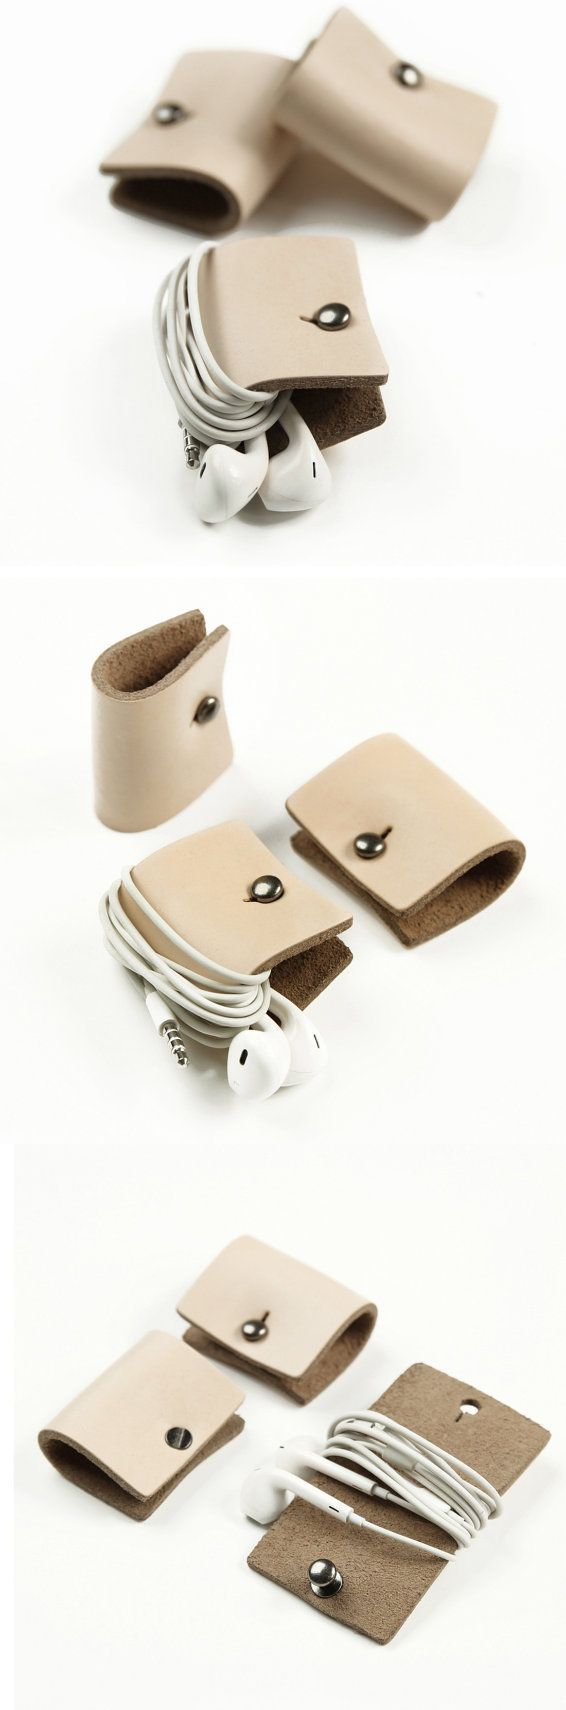 Leather Earphone Headphone Organizer with Snap /MillionBag コバ処理チェック!- I NEED THIS!